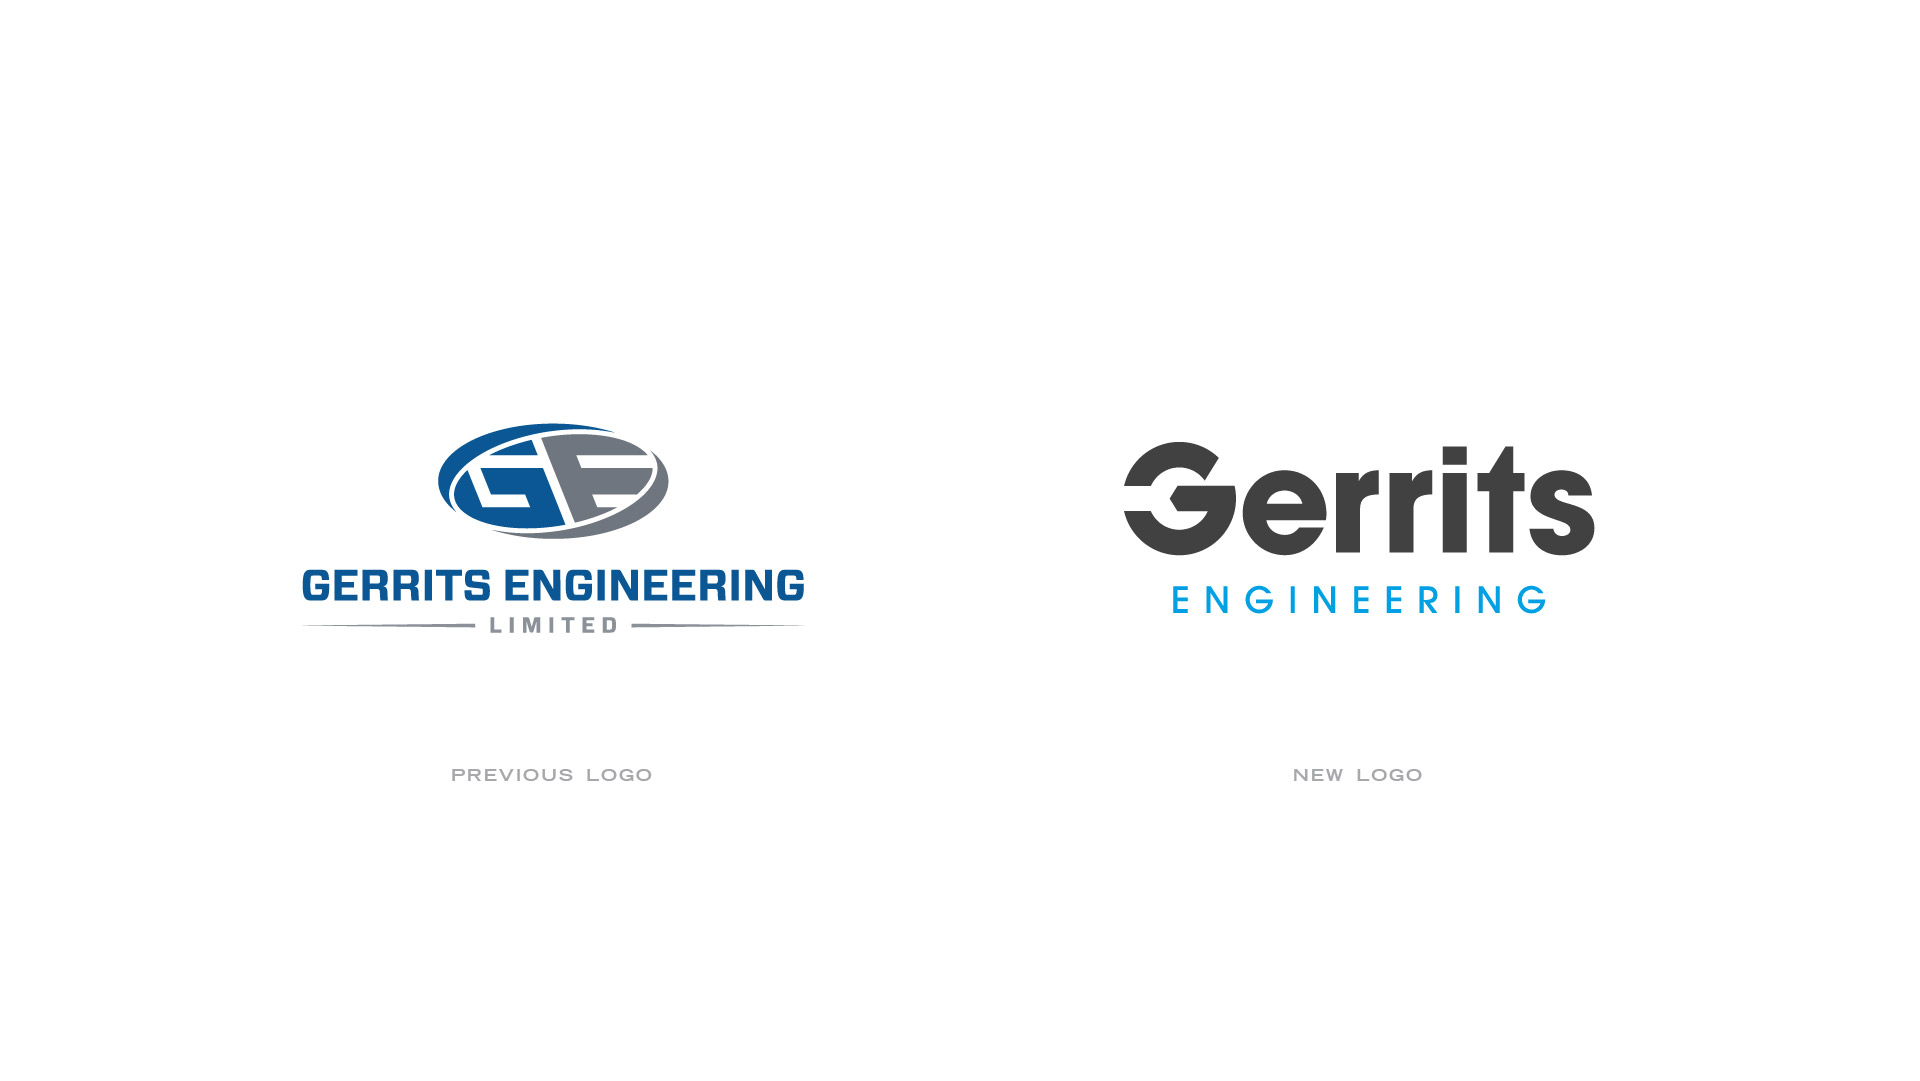 gerrits engineering old logo and new logo